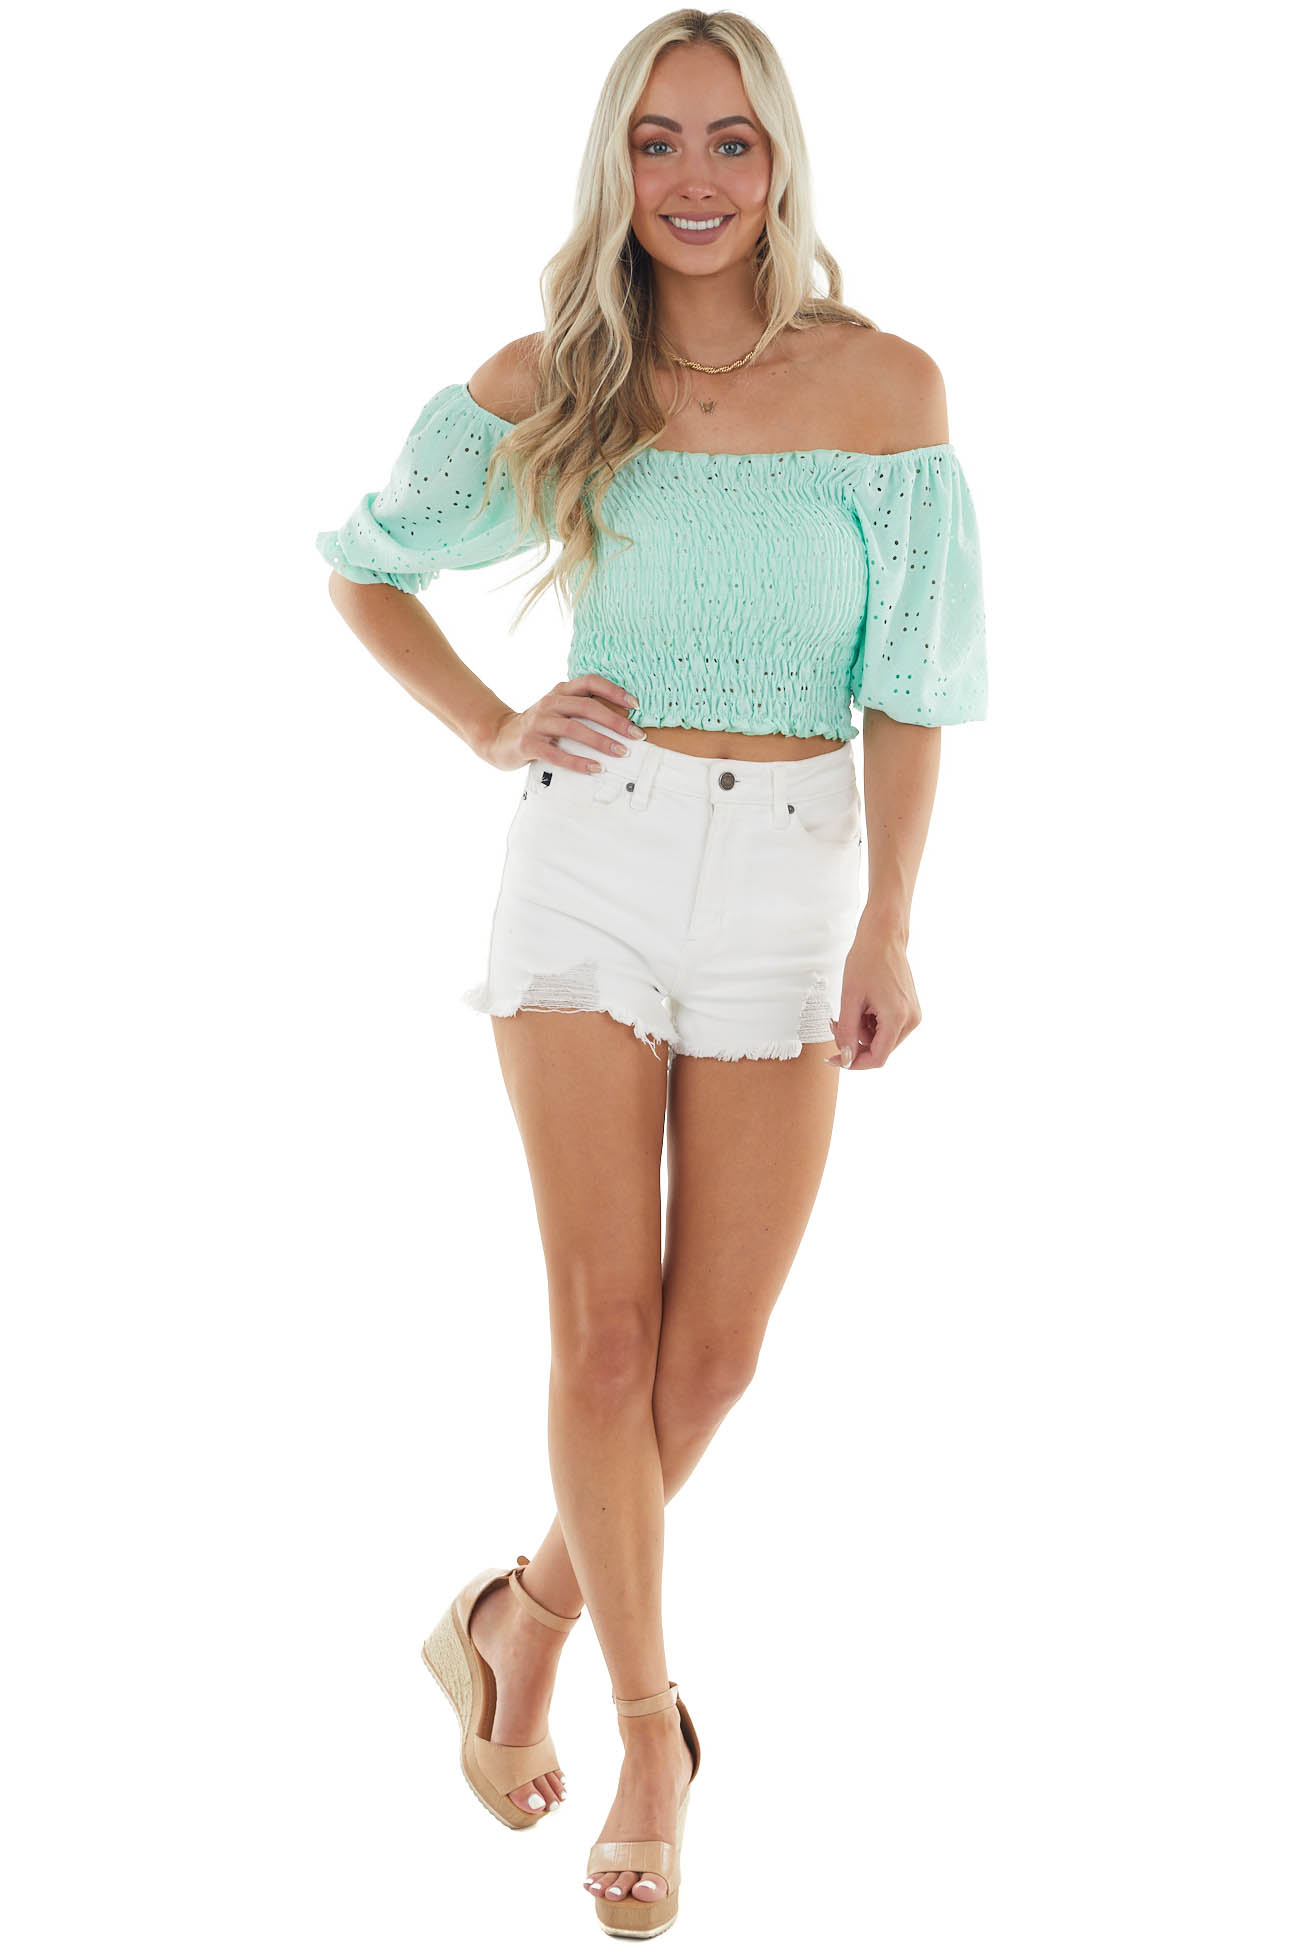 Mint Eyelet Lace Smocked Top with Puff Sleeves